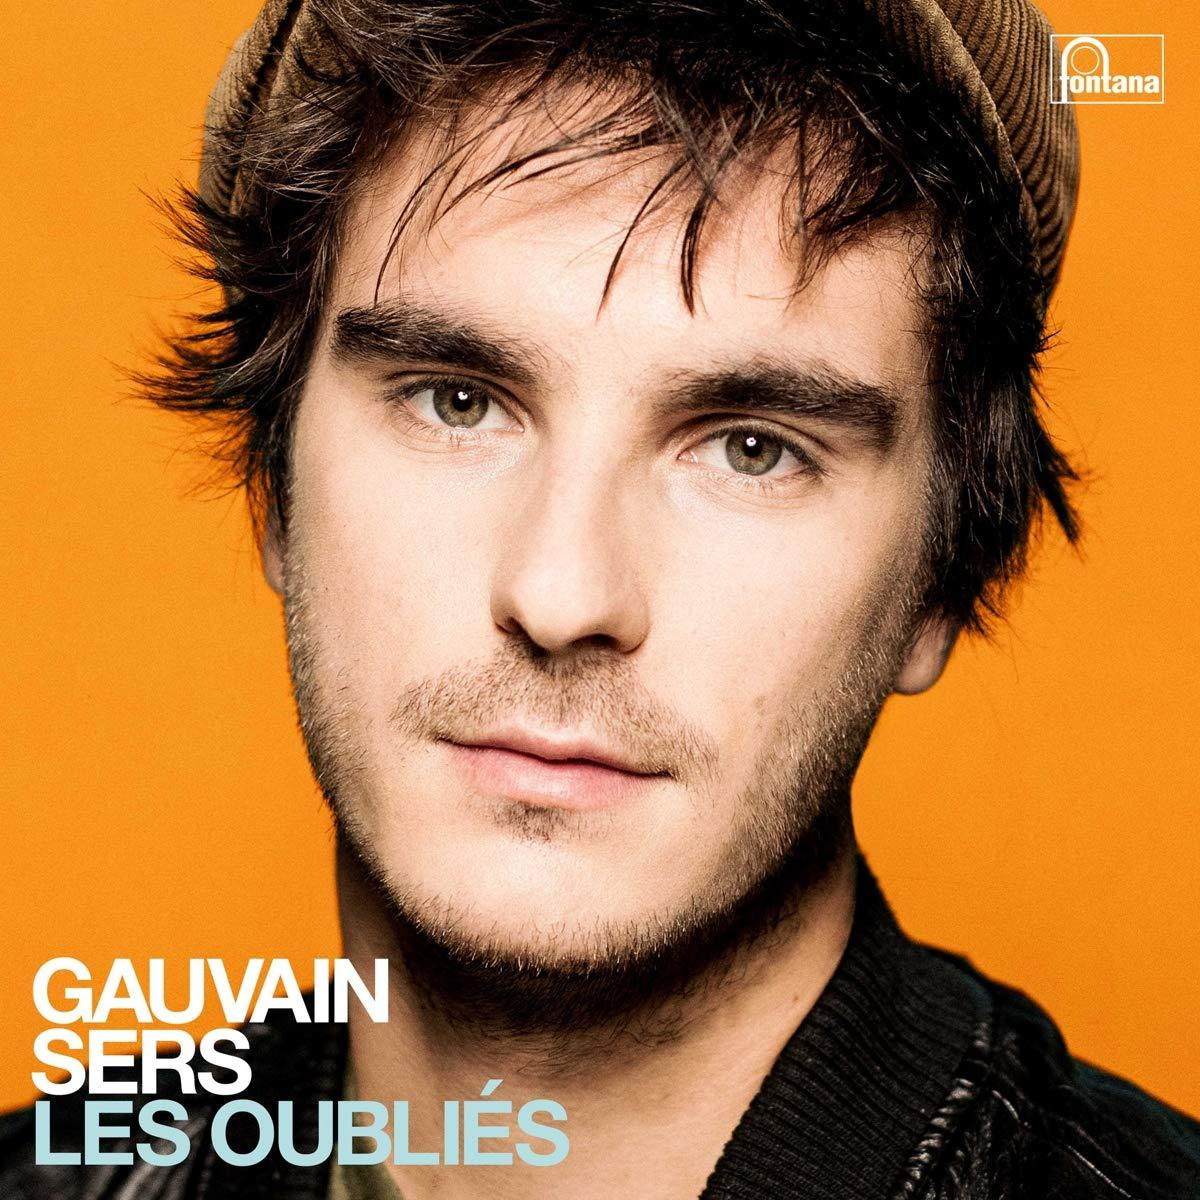 Gauvain sers les oublies